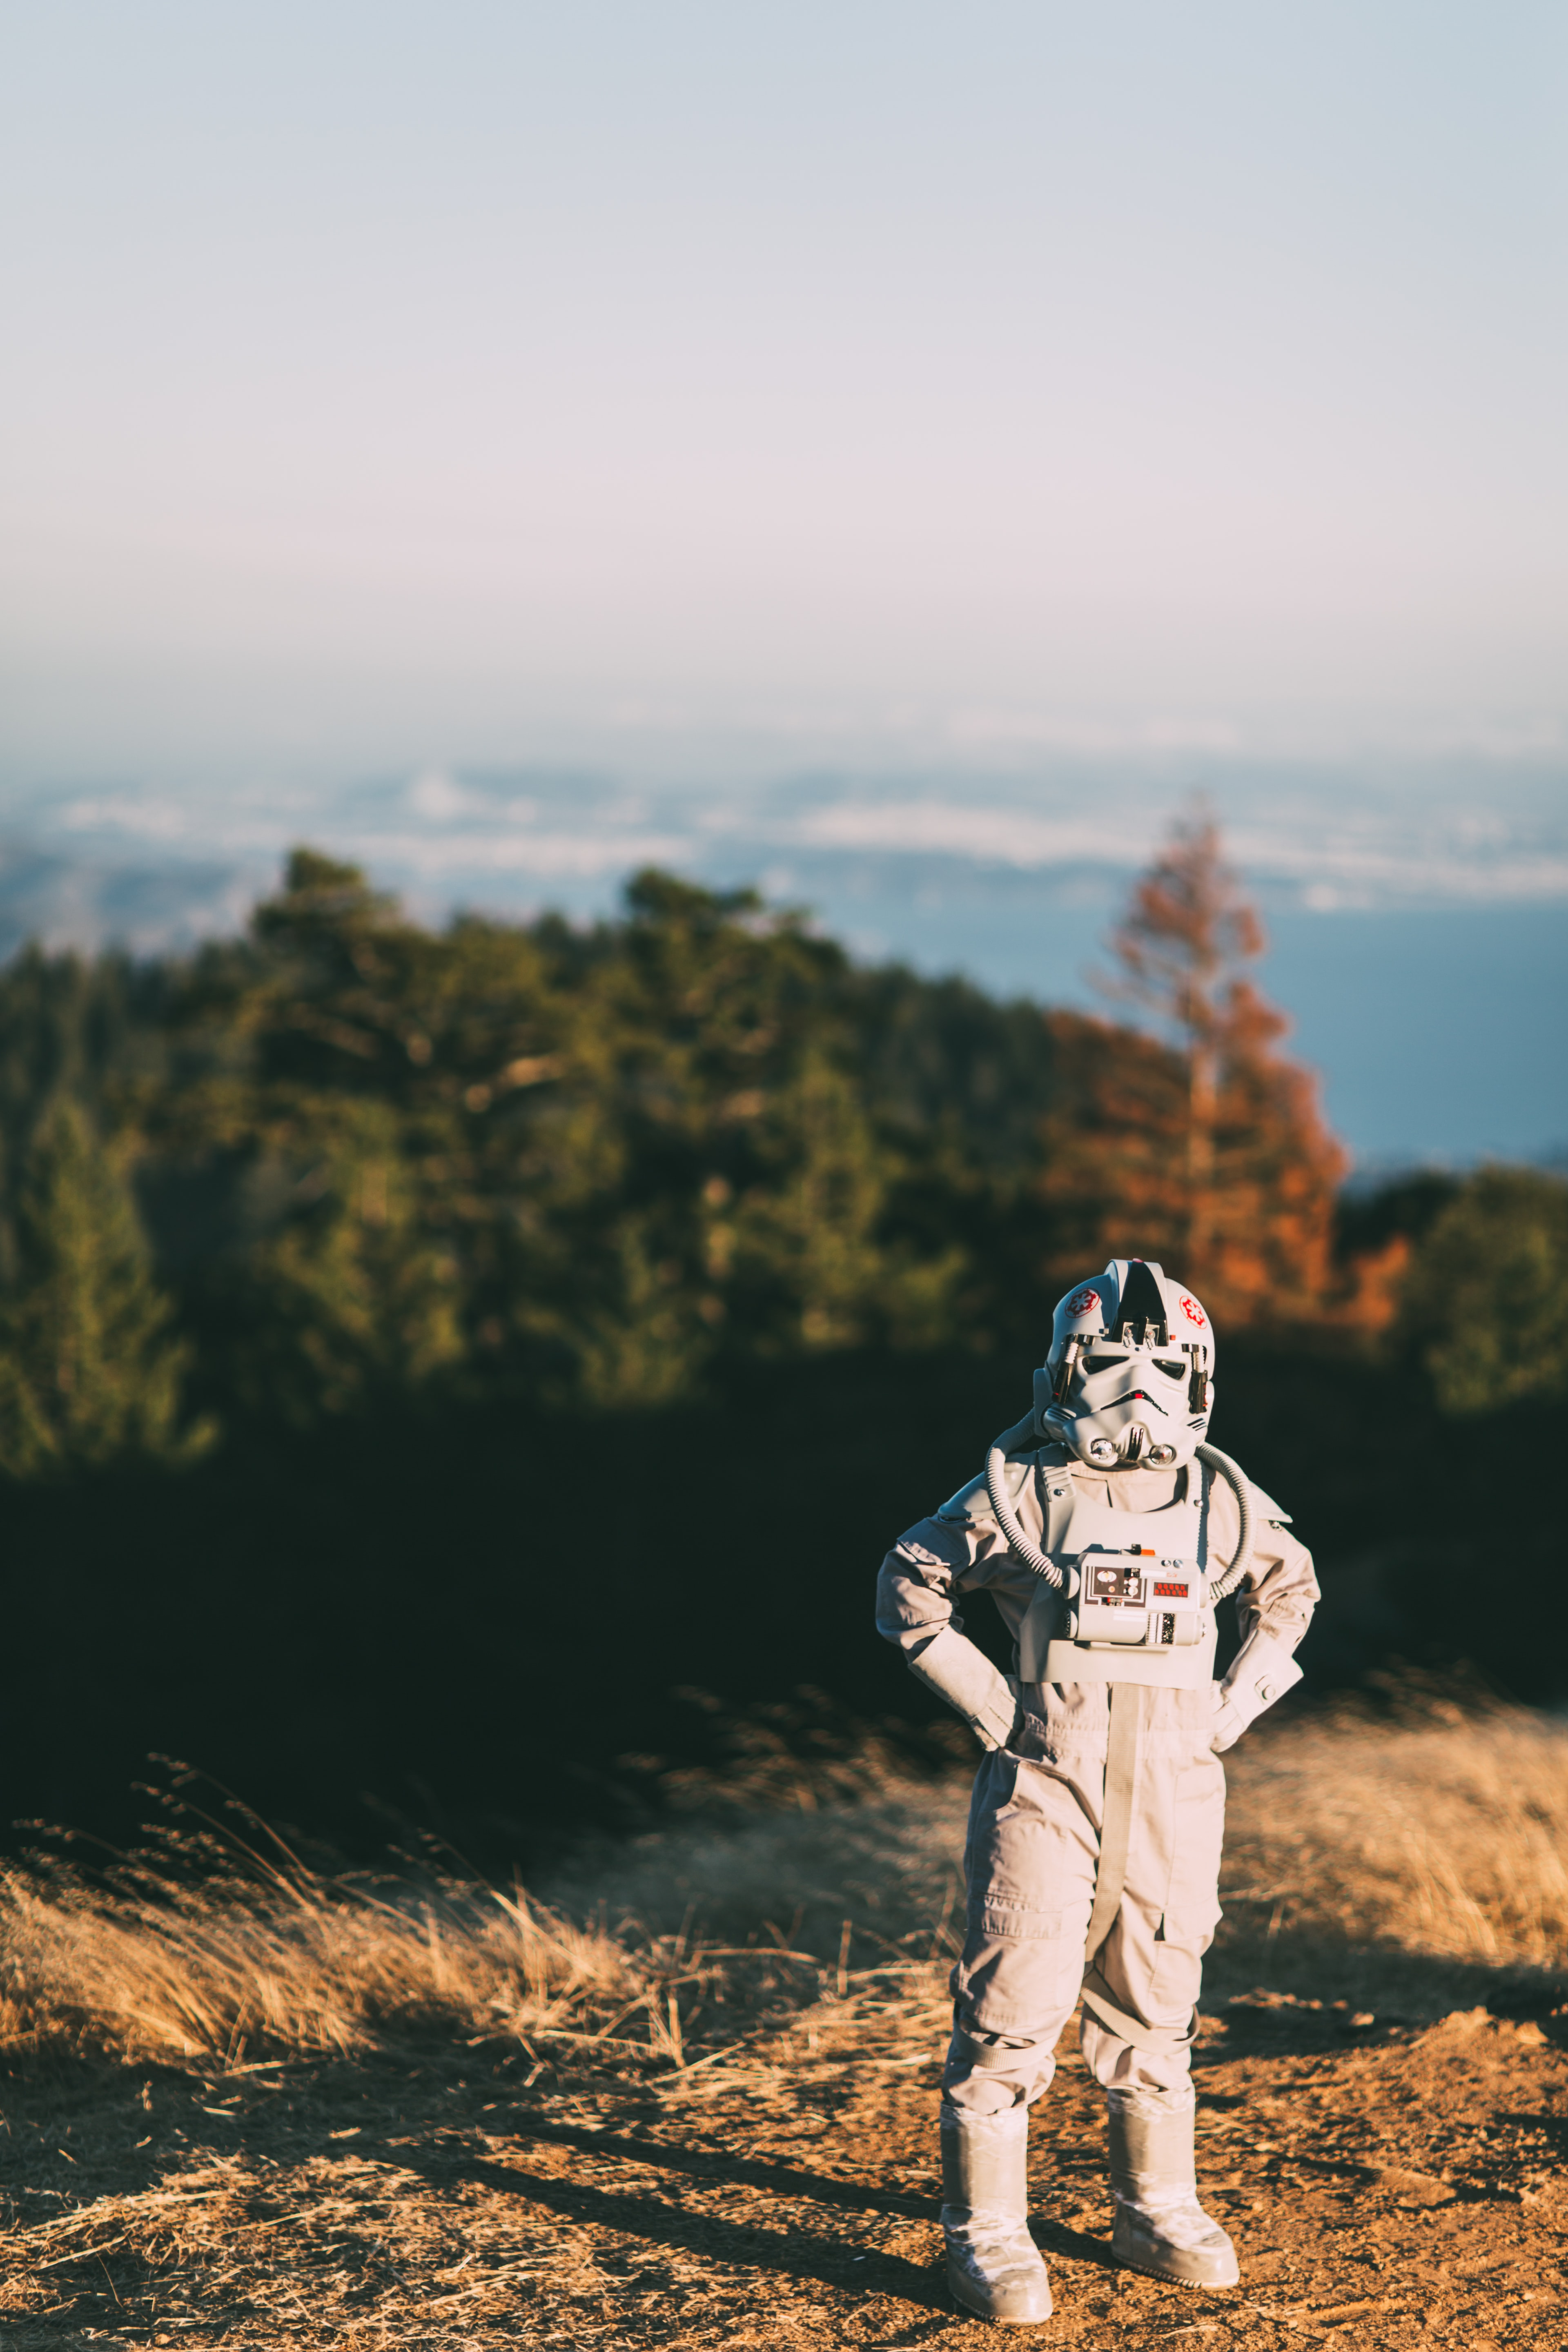 A child in a Star Wars' stormtrooper costume on a slope near a forest